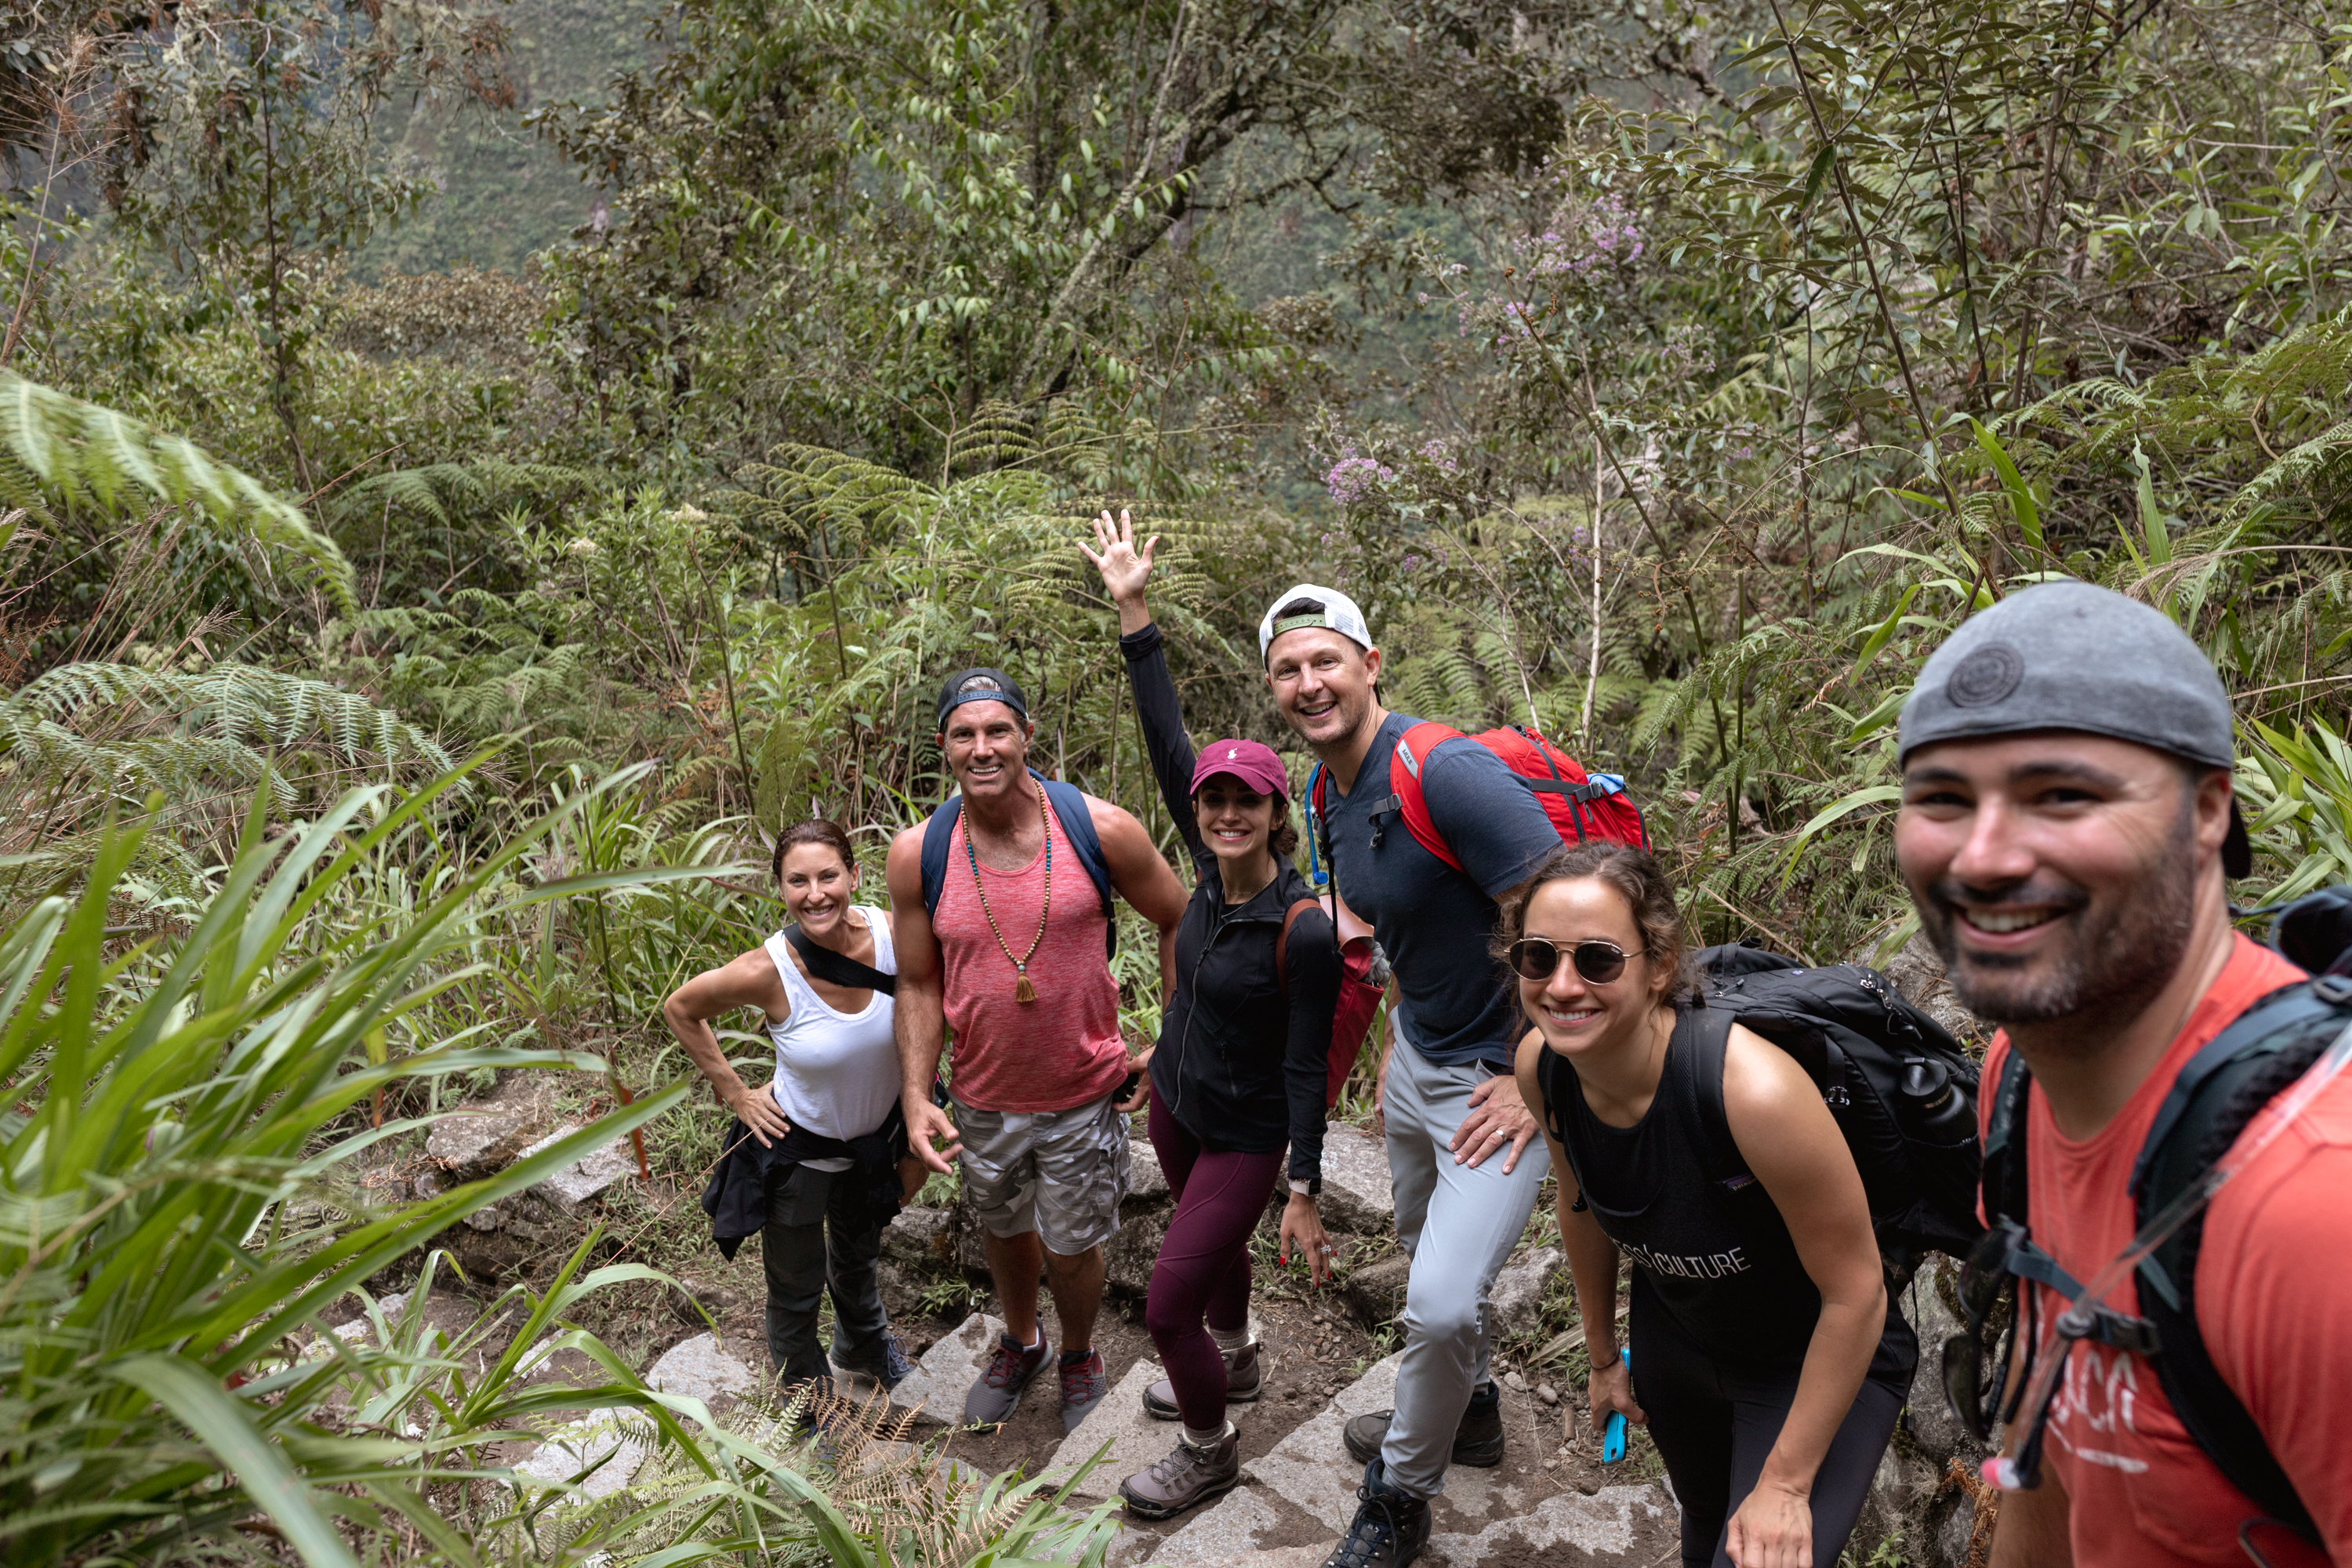 hiking down from Machu Picchu with this crew #hiking #getoutside #travel #peru